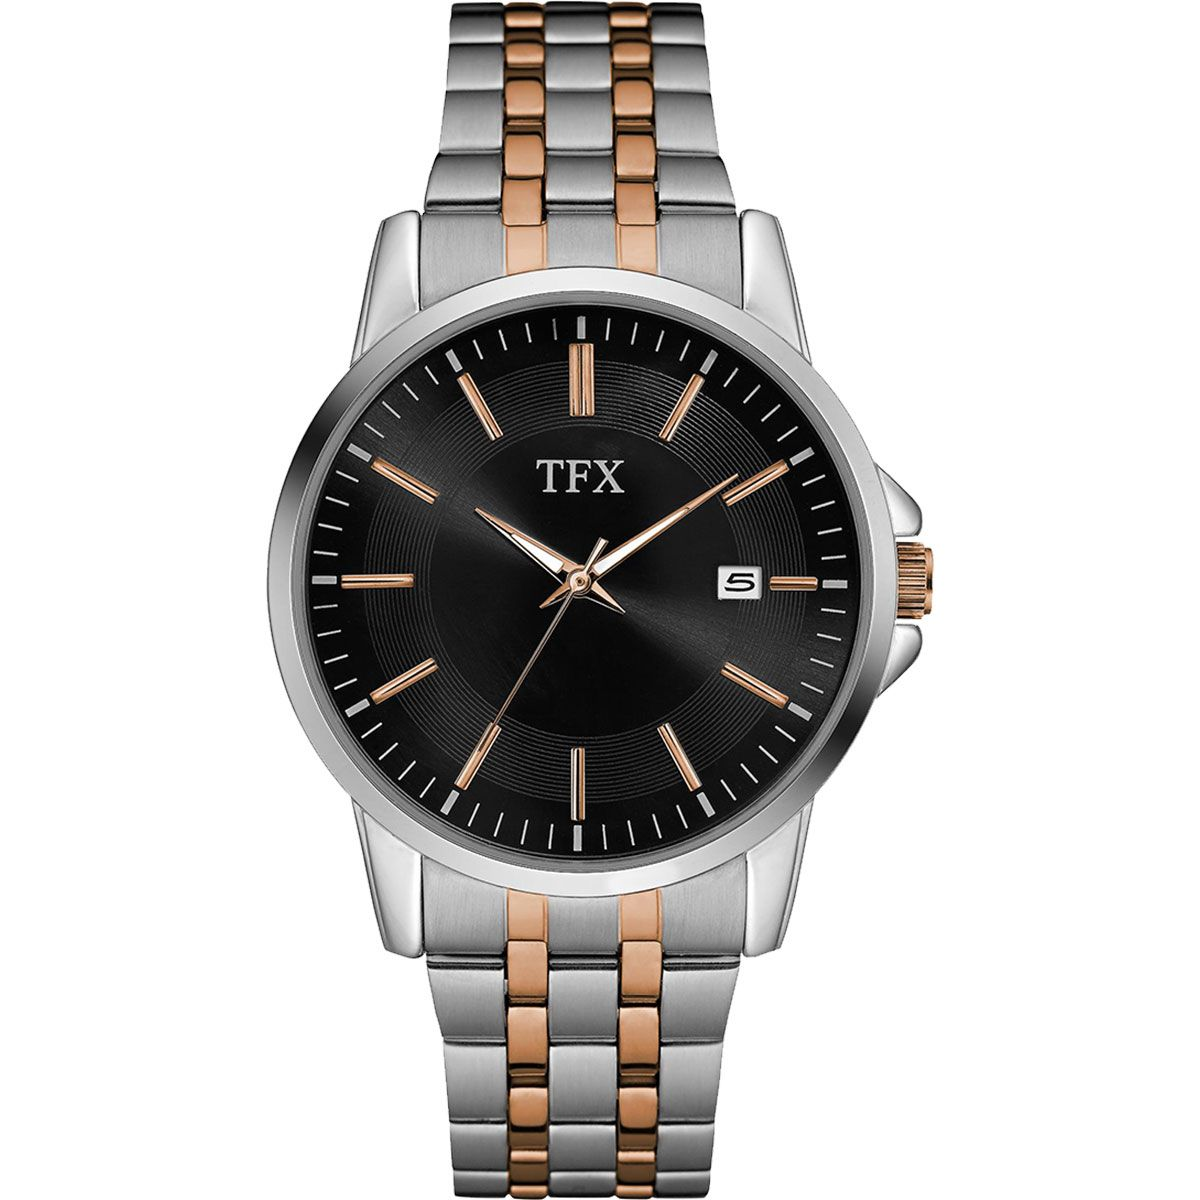 38B101 TFX Men's Stainless Steel and Rose Gold Bracelet Watch